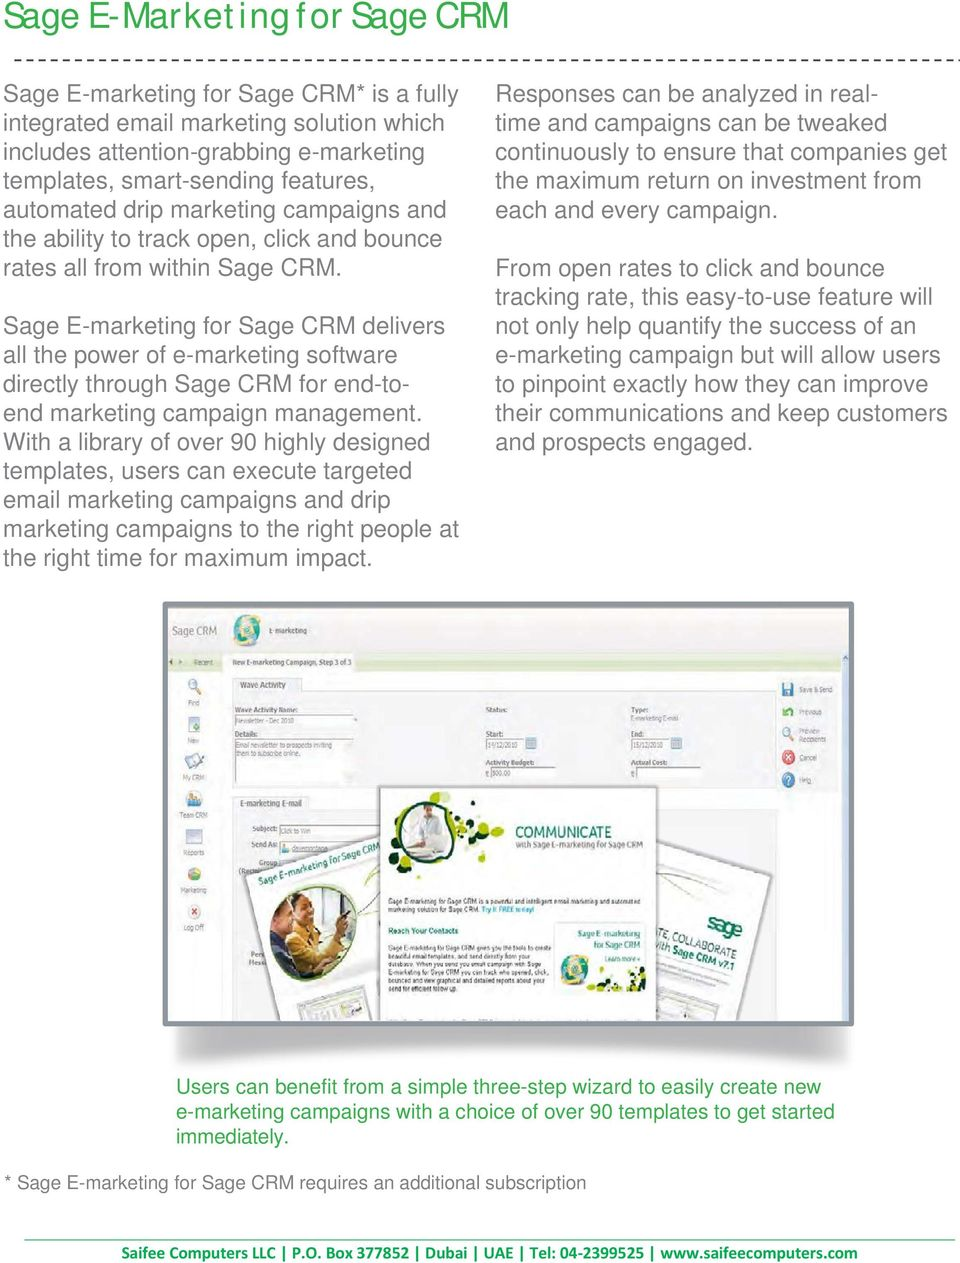 Sage E-marketing for Sage CRM delivers all the power of e-marketing software directly through Sage CRM for end-toend marketing campaign management.